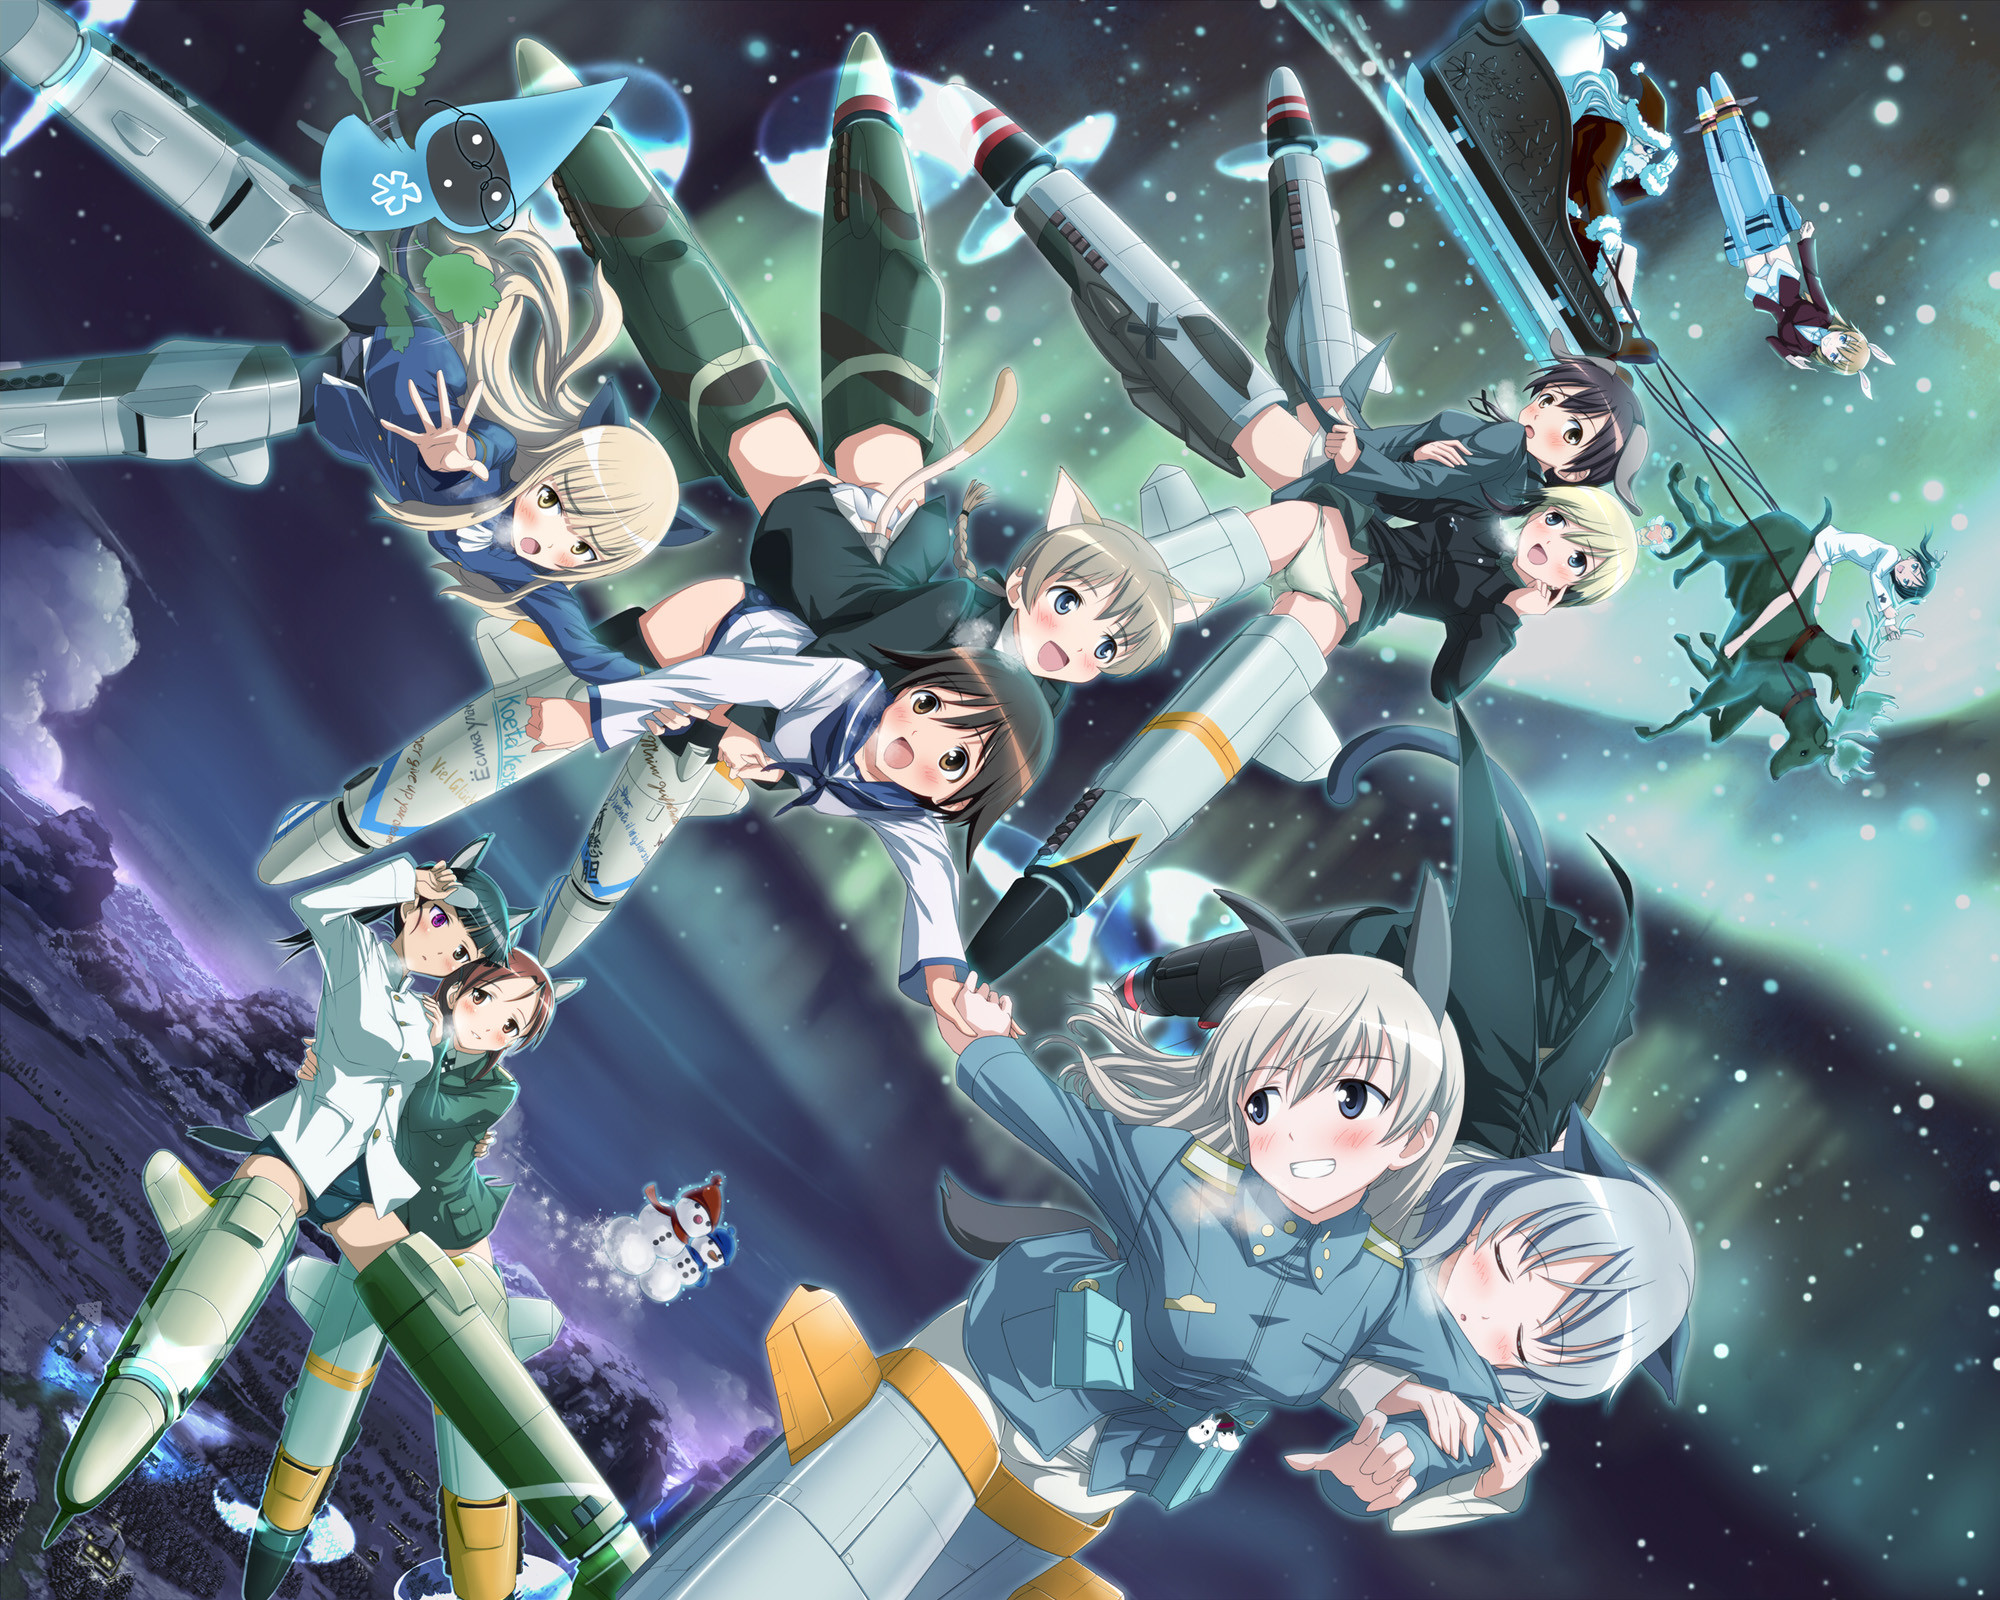 2000x1600 strike witches wallpaper - Buscar con Google